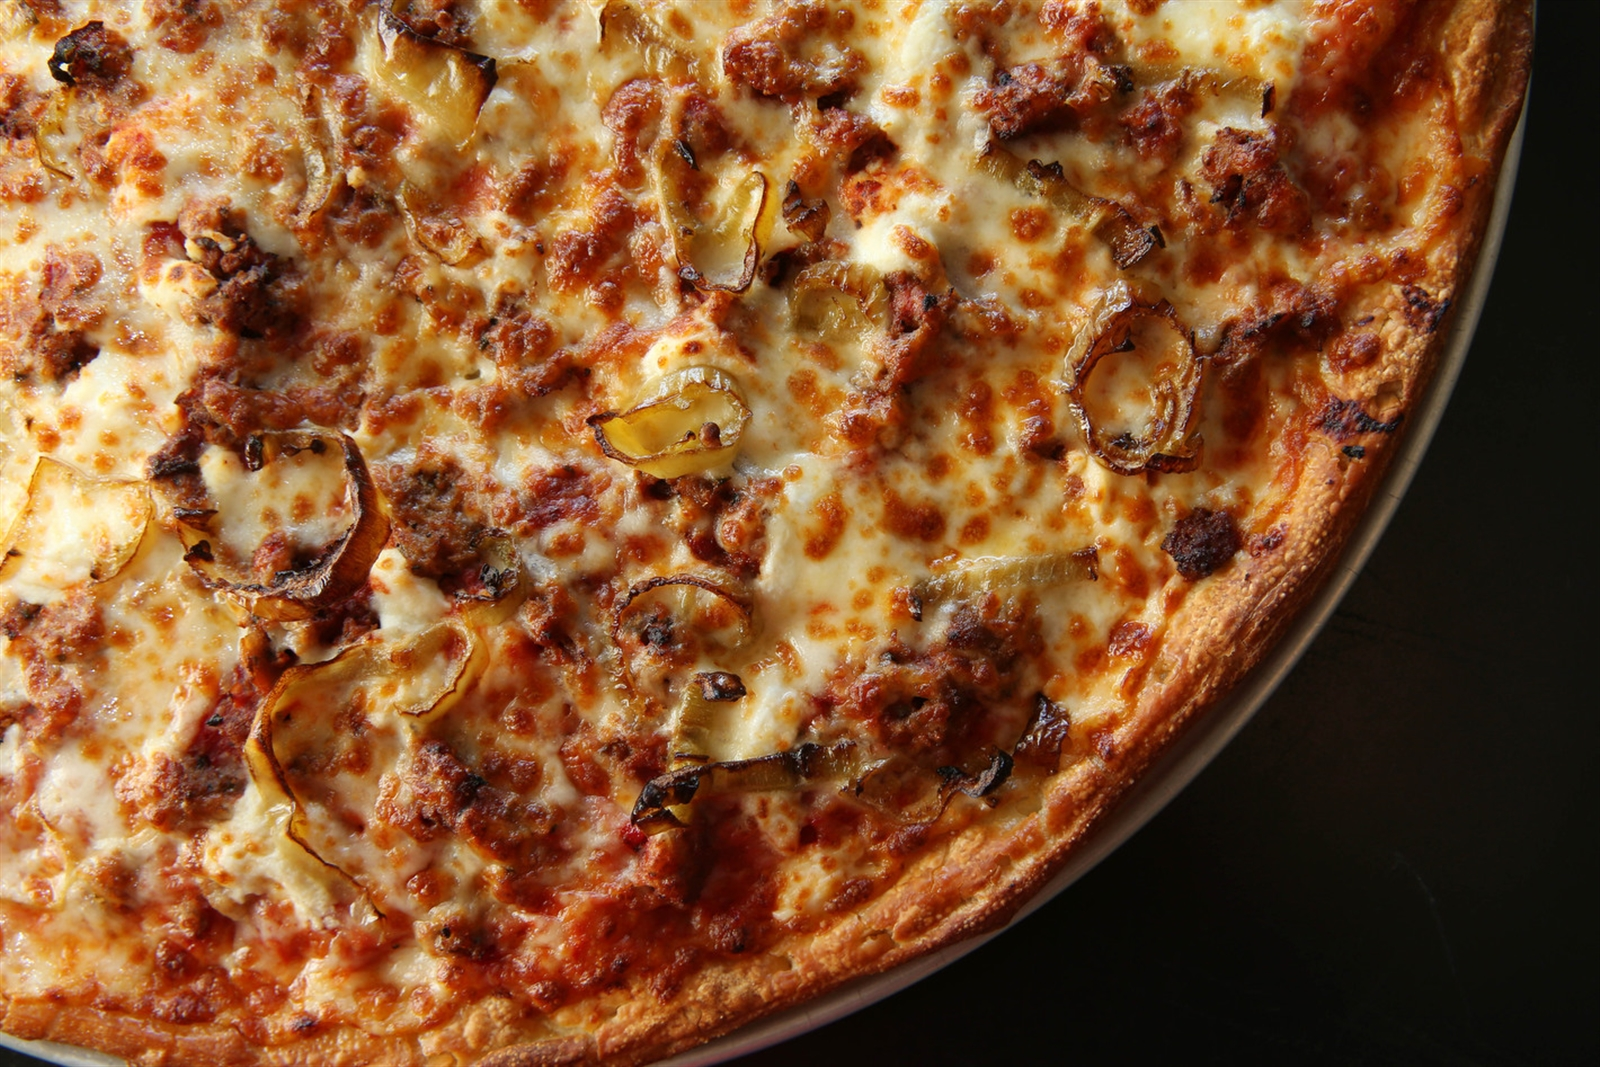 The cheesesteak pizza is  a white pizza topped with steak, mozzarella, fontina cheddar/jack, Romano, hot banana peppers, dried onions and a special sauce.